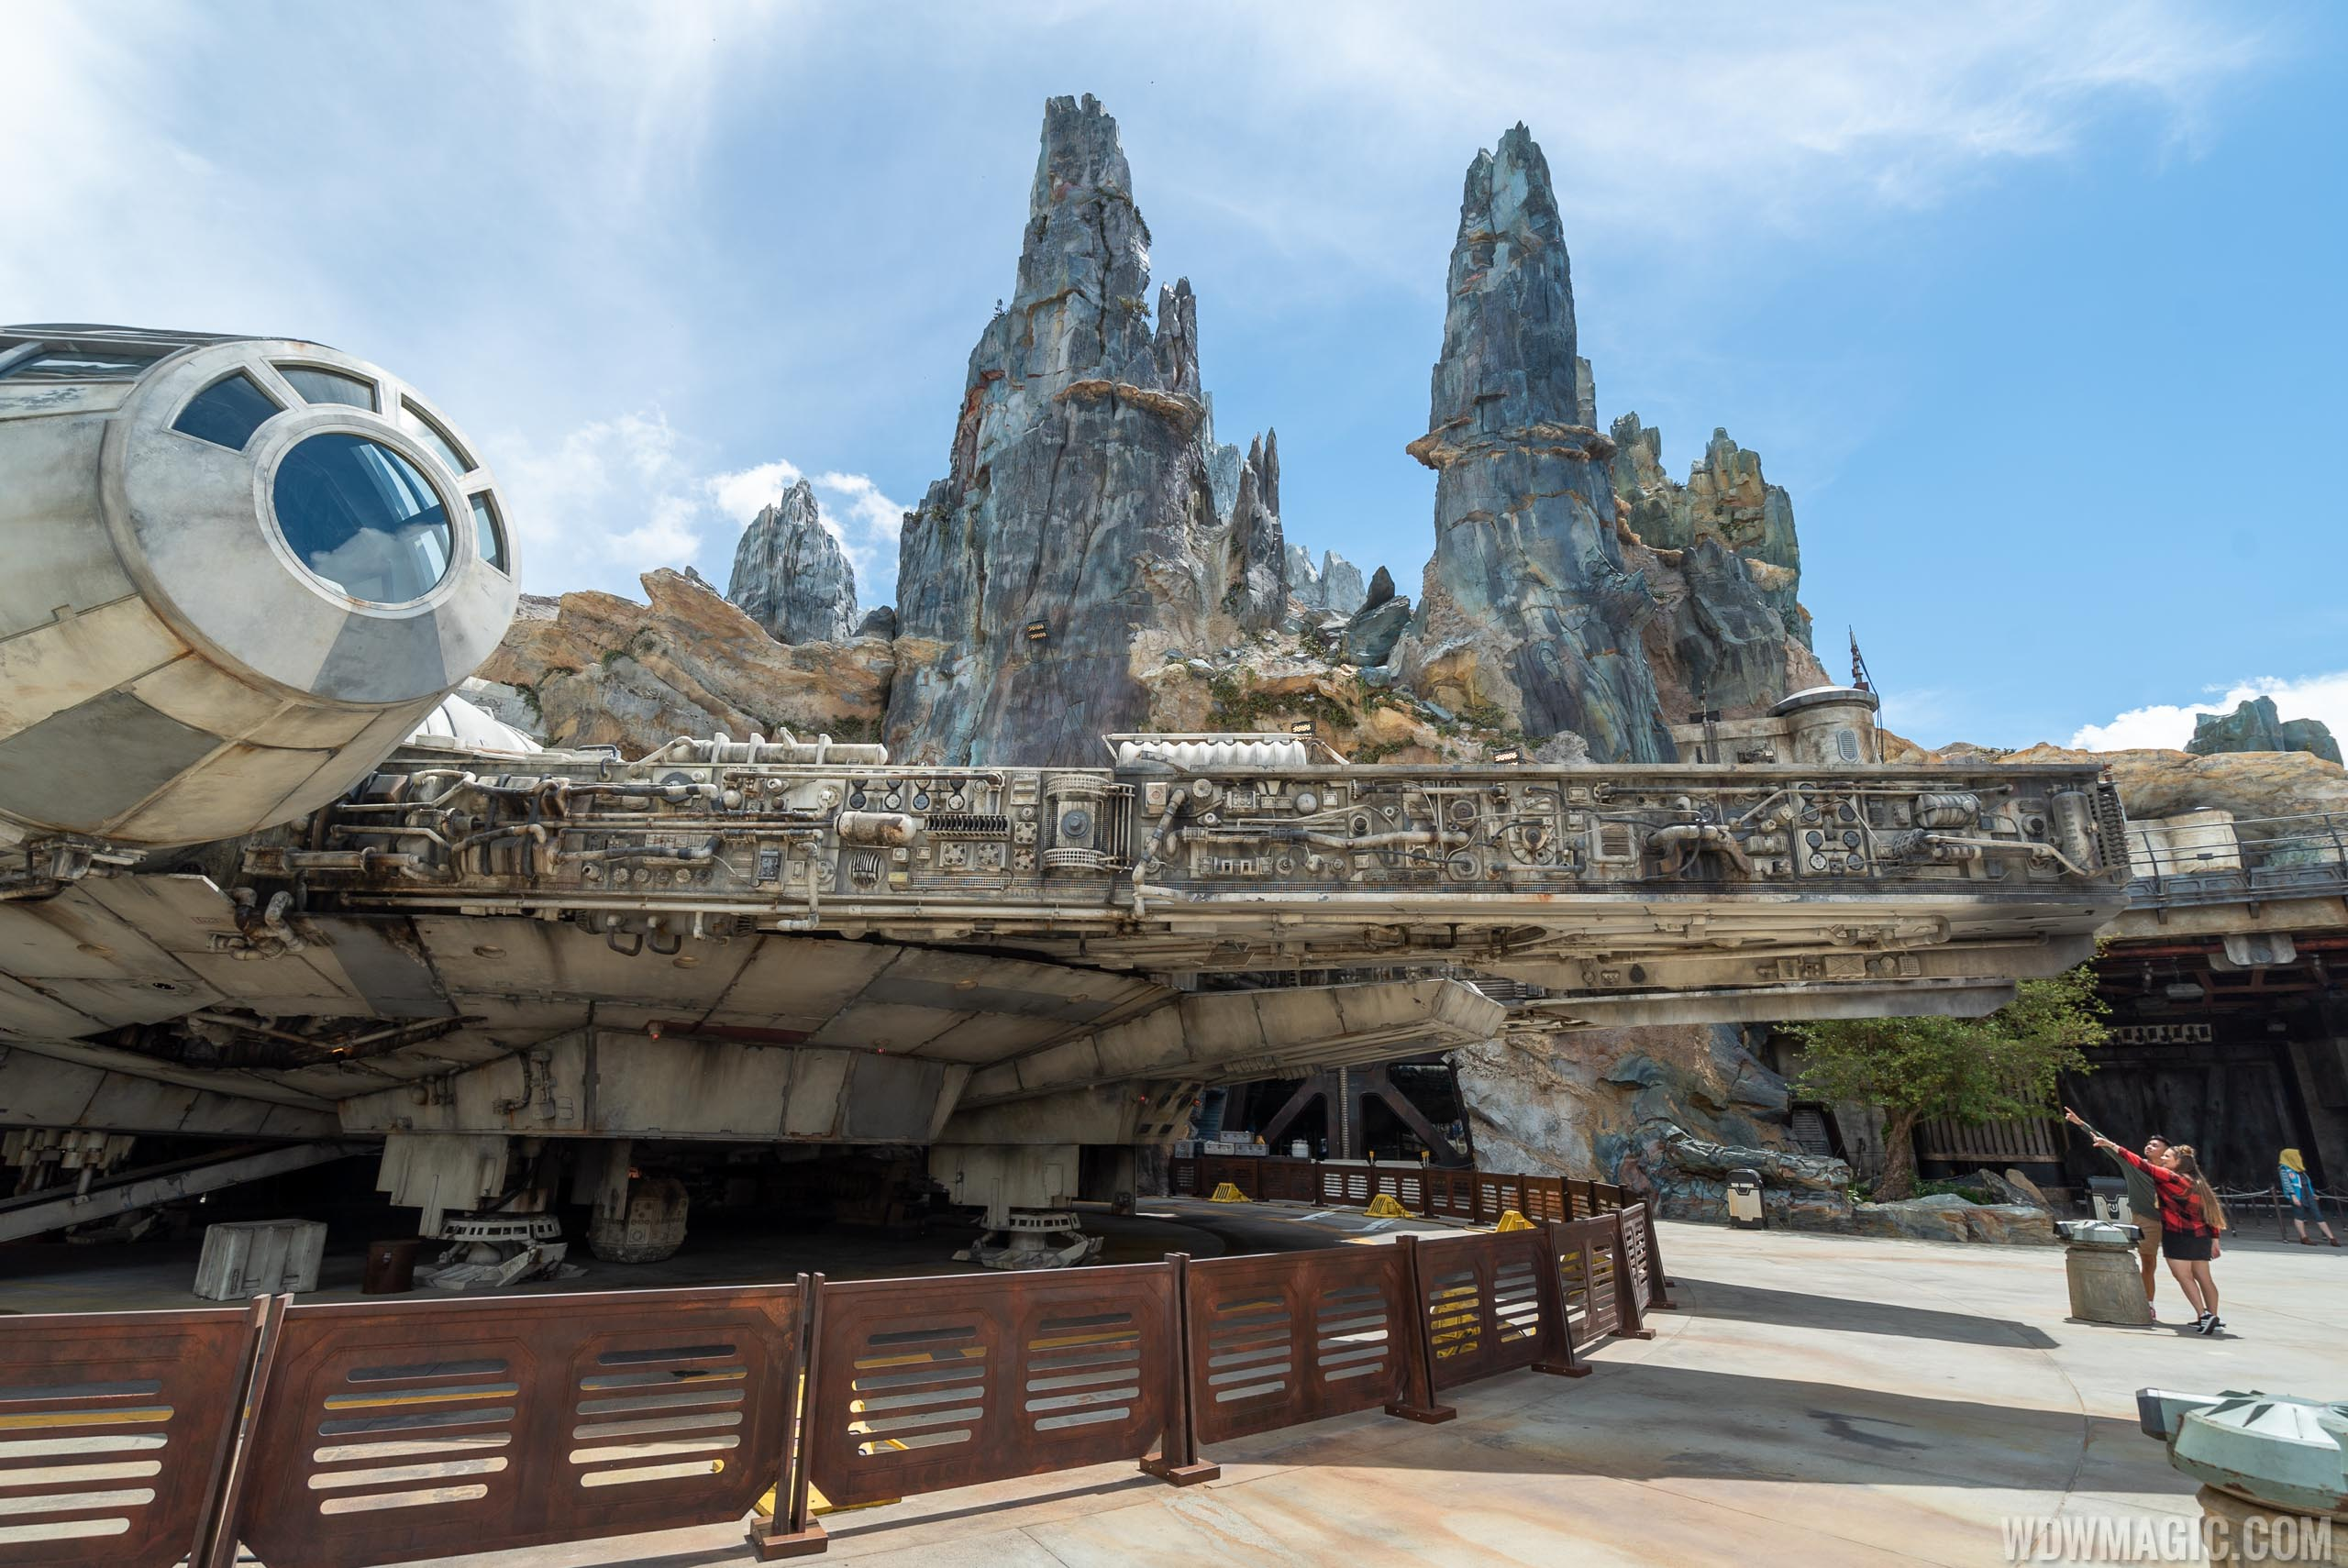 Closeup of the Millennium Falcon at Star Wars Galaxy's Edge in Walt Disney World